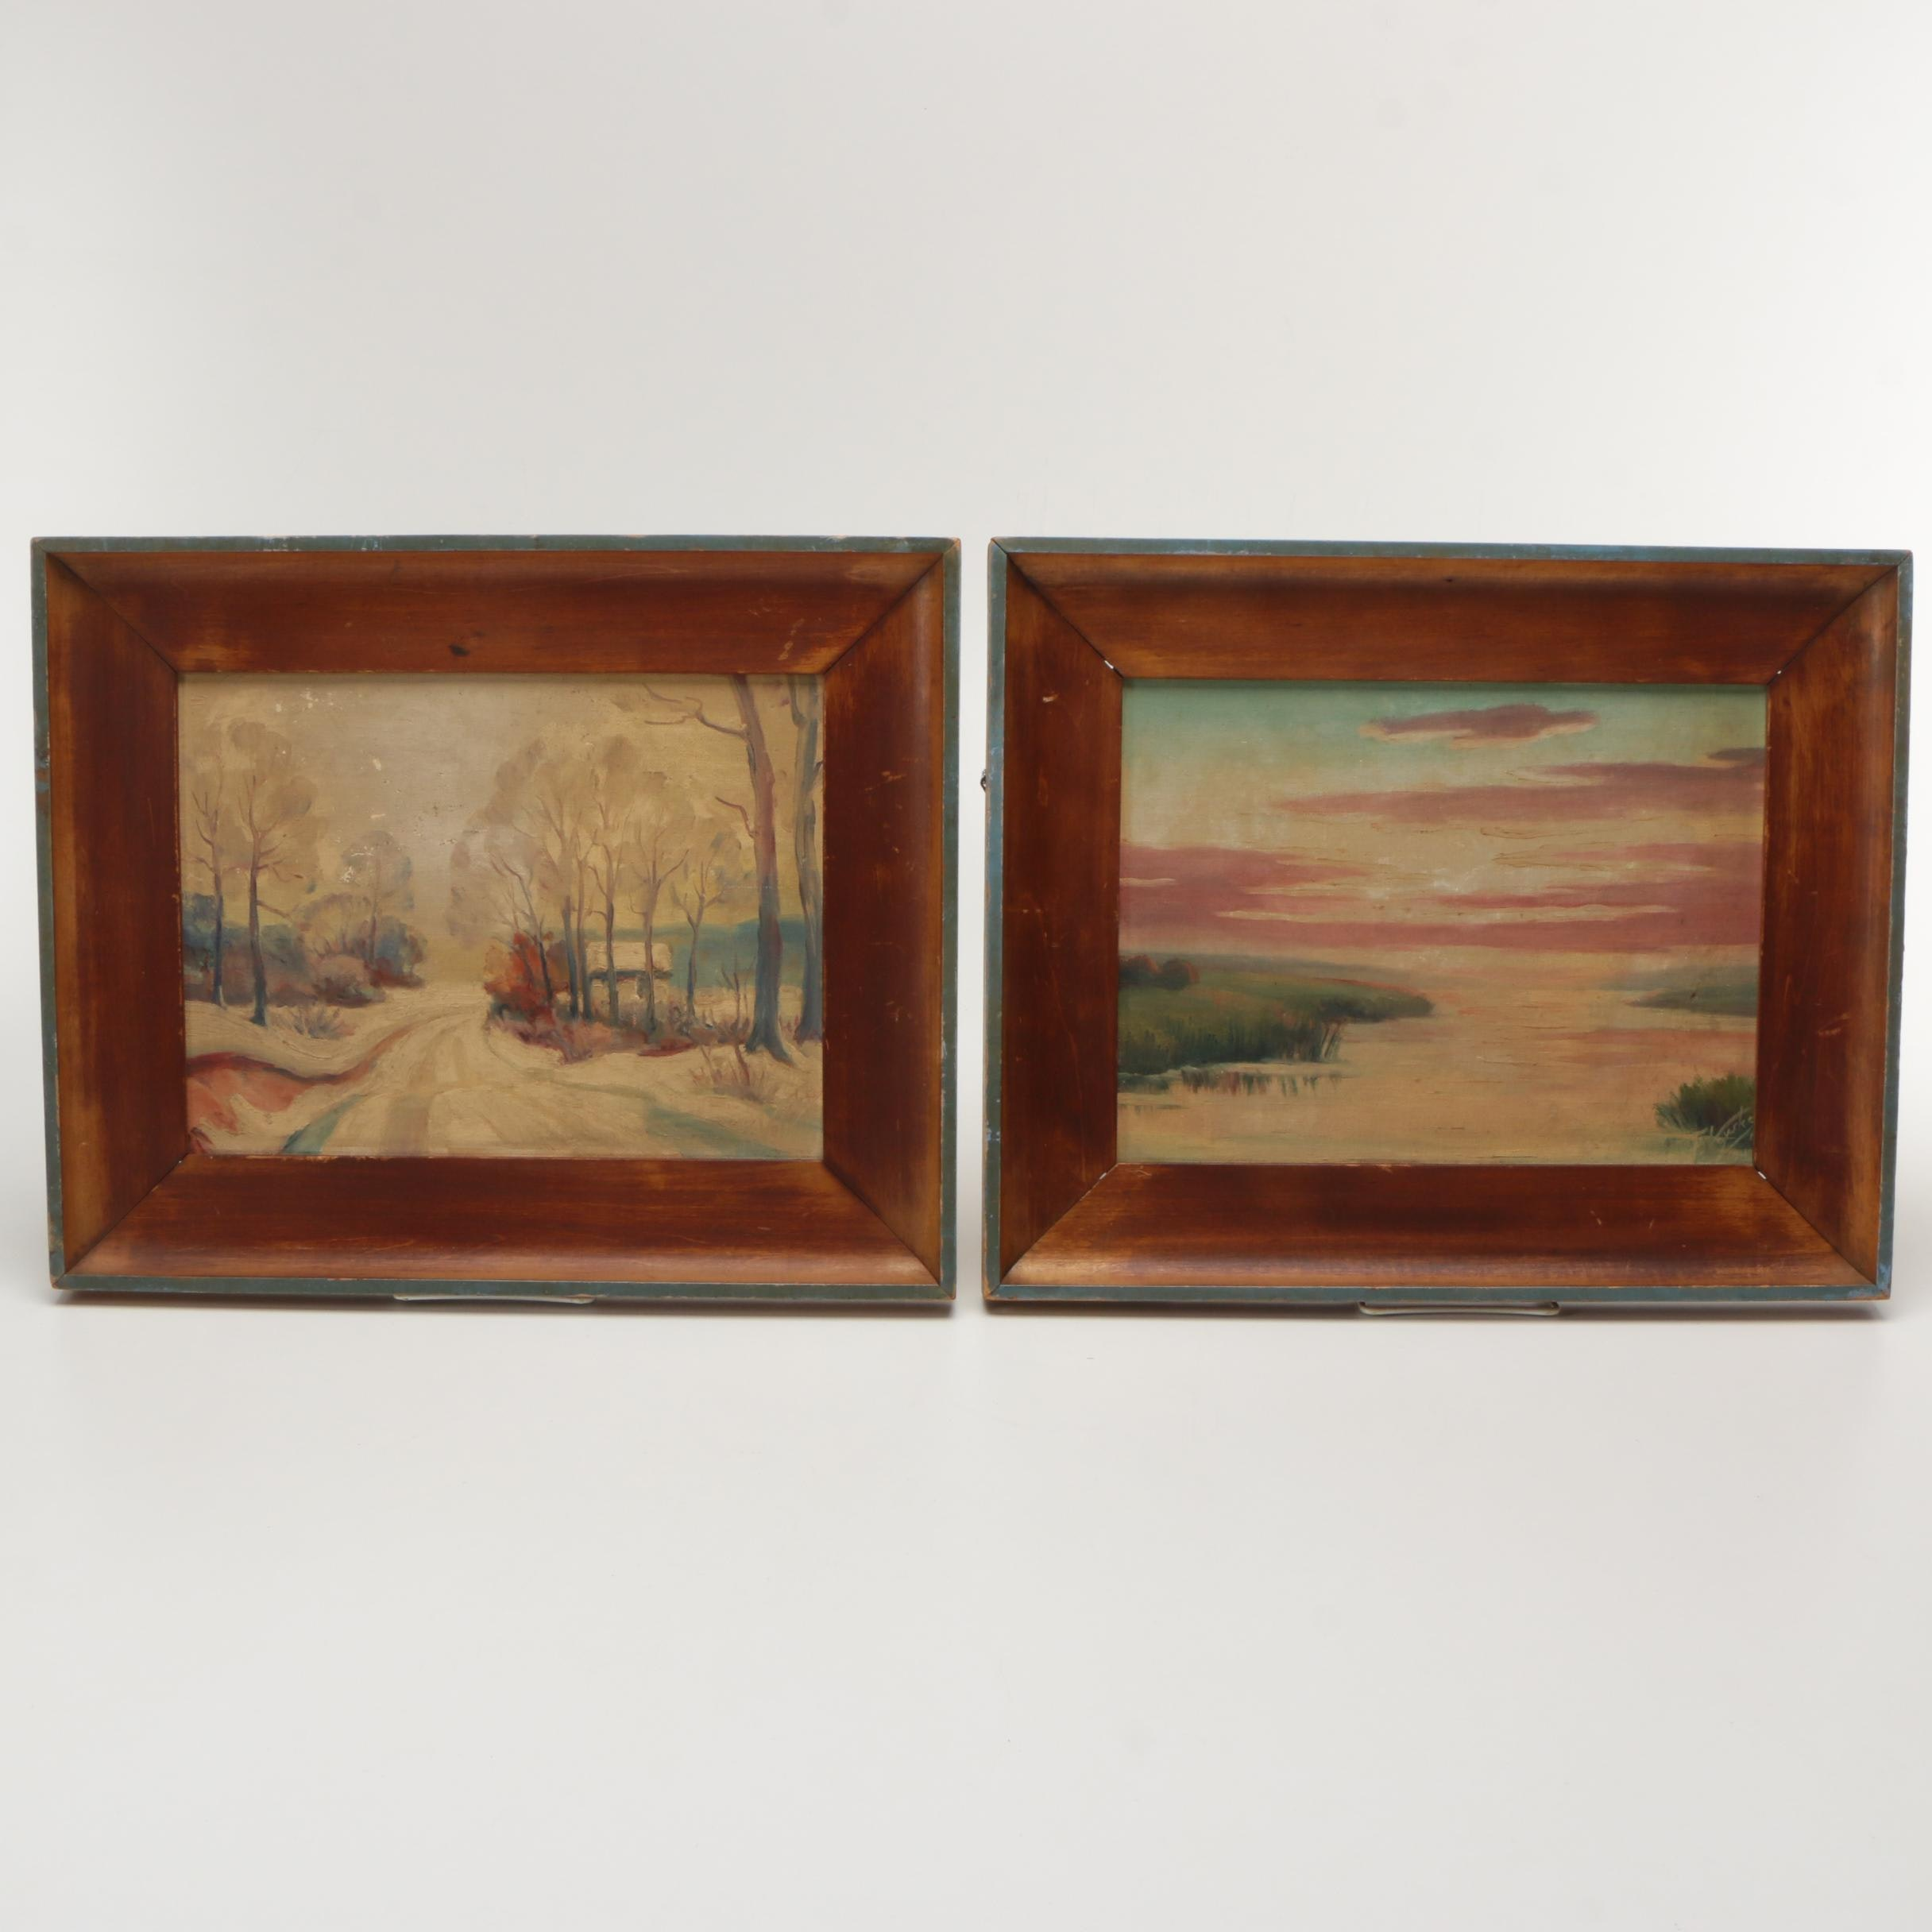 Pair of Frank Voyska Oil Paintings on Canvas Board of Landscapes